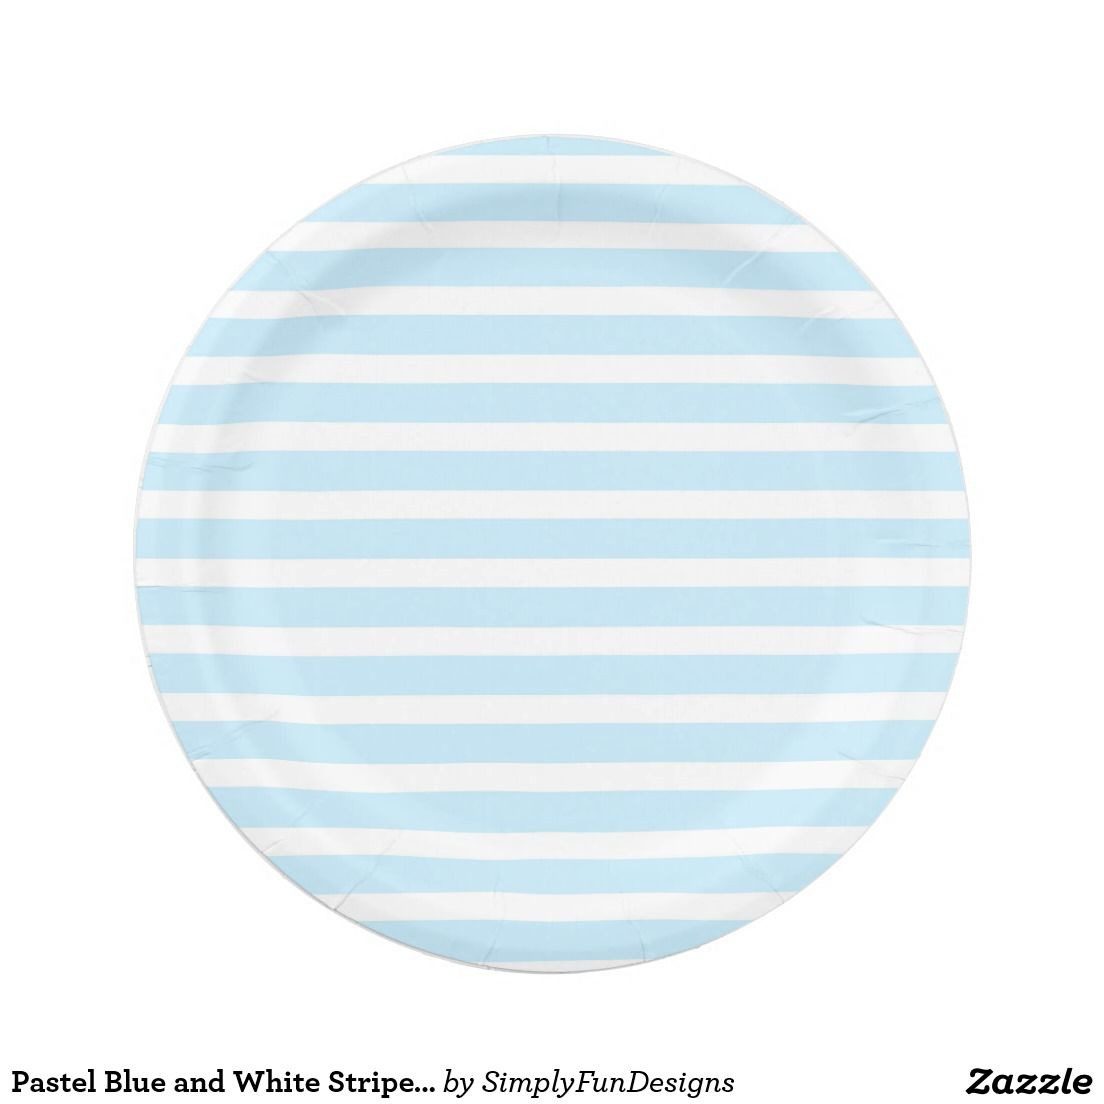 Pastel Blue and White Stripes Paper Plates 7 Inch Paper Plate  sc 1 st  Pinterest & Pastel Blue and White Stripes Paper Plates 7 Inch Paper Plate ...